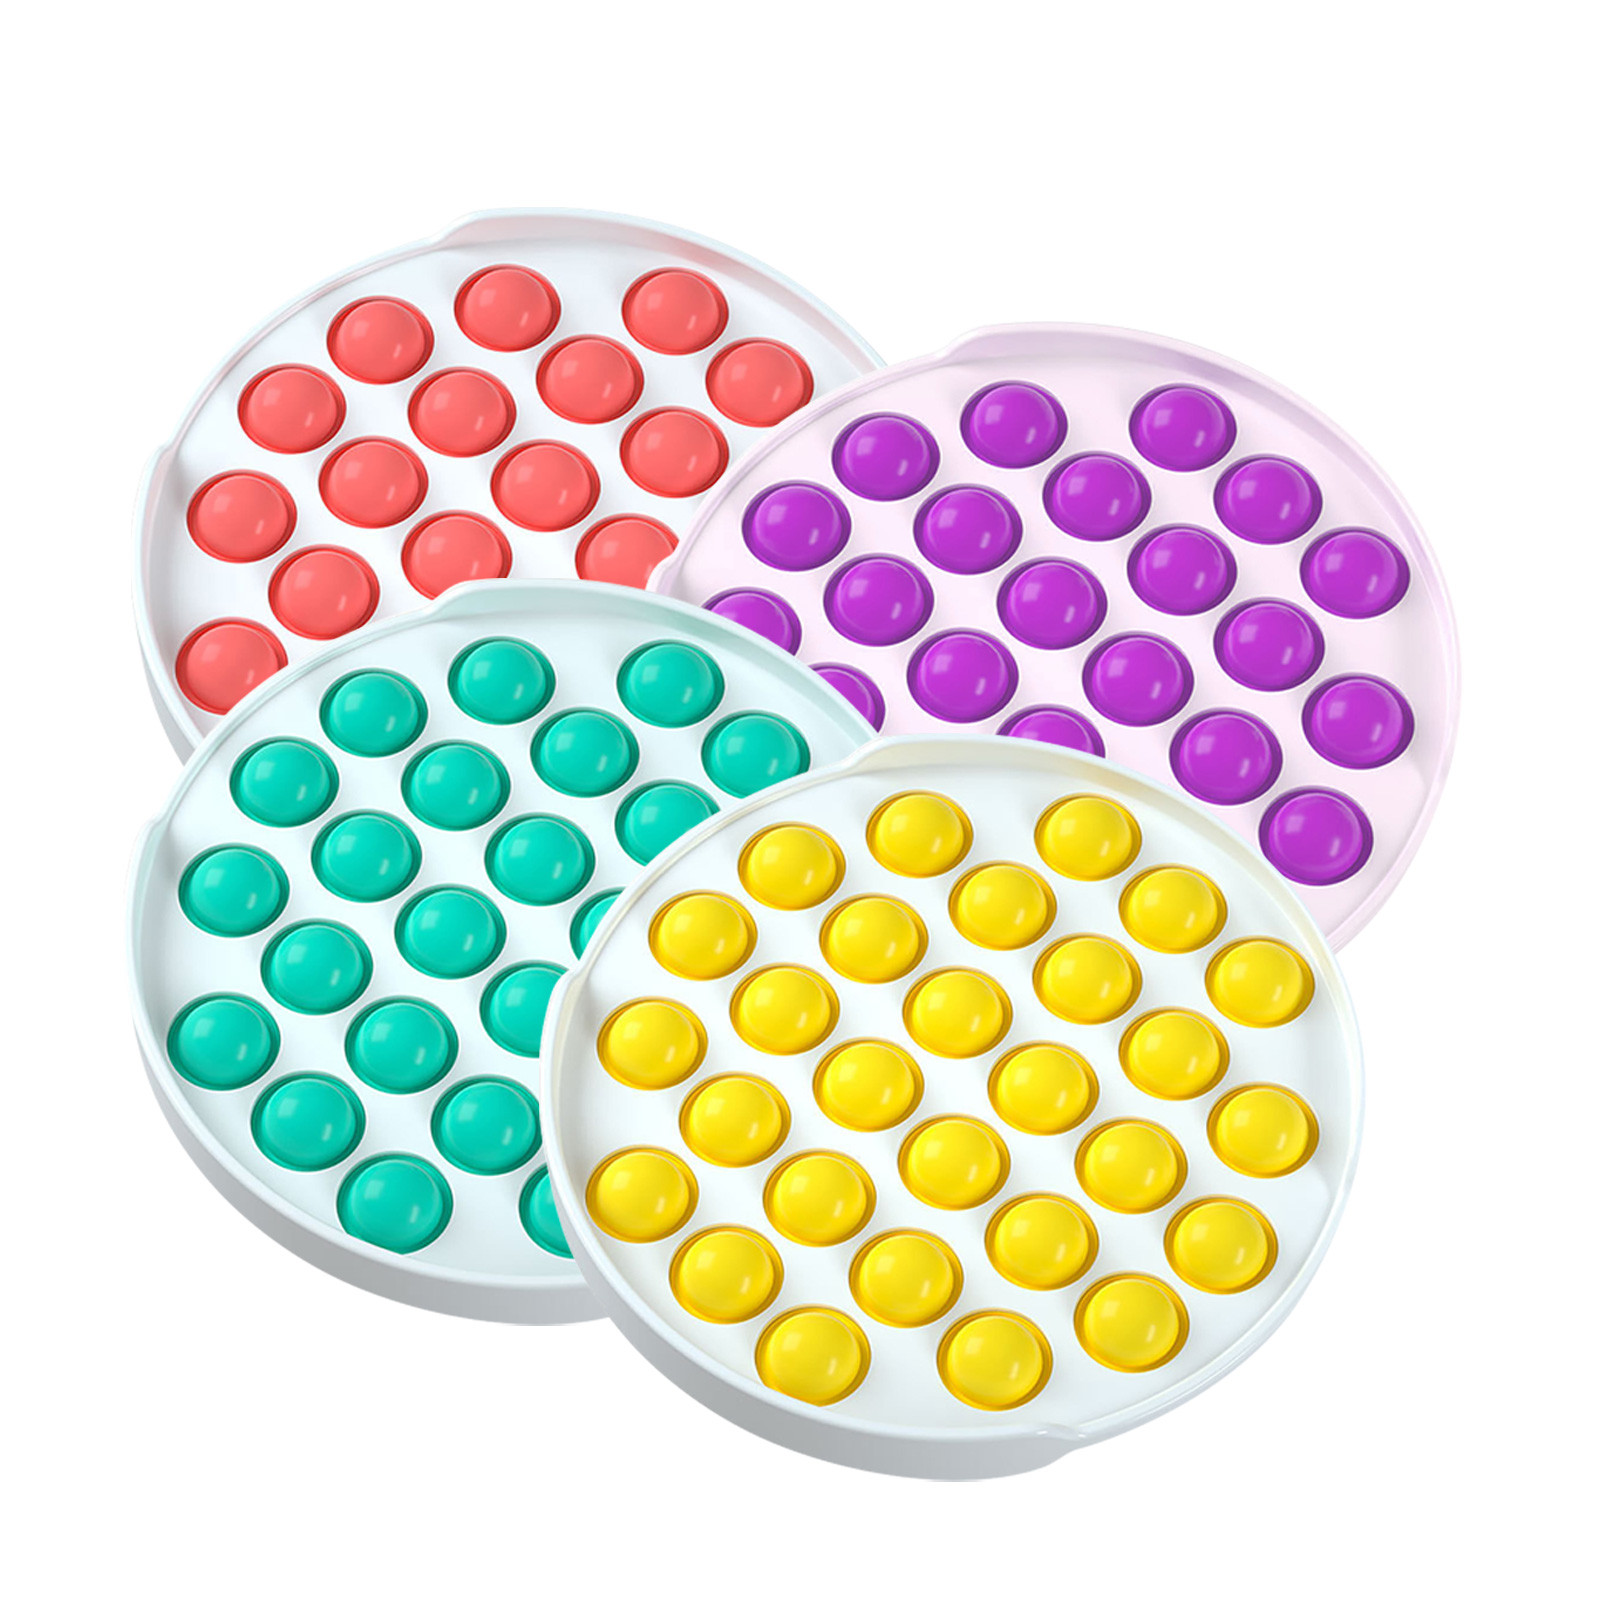 New Fidget Toys Soft-Squeeze-Toy Needs-Stress Pop-It-Autism Push-Bubble Reliever Special img3